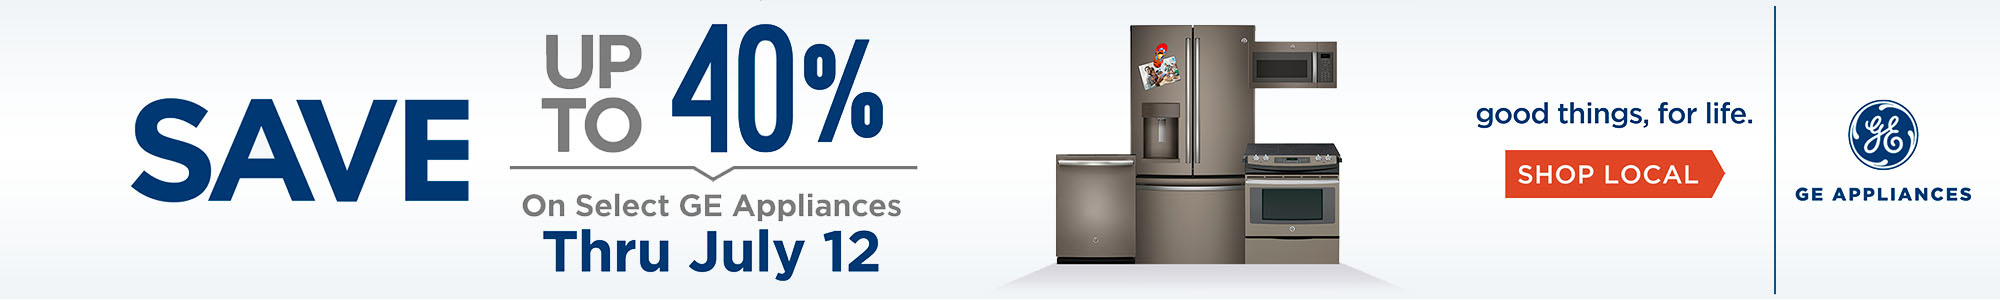 Save up to 40% on Select GE Appliances